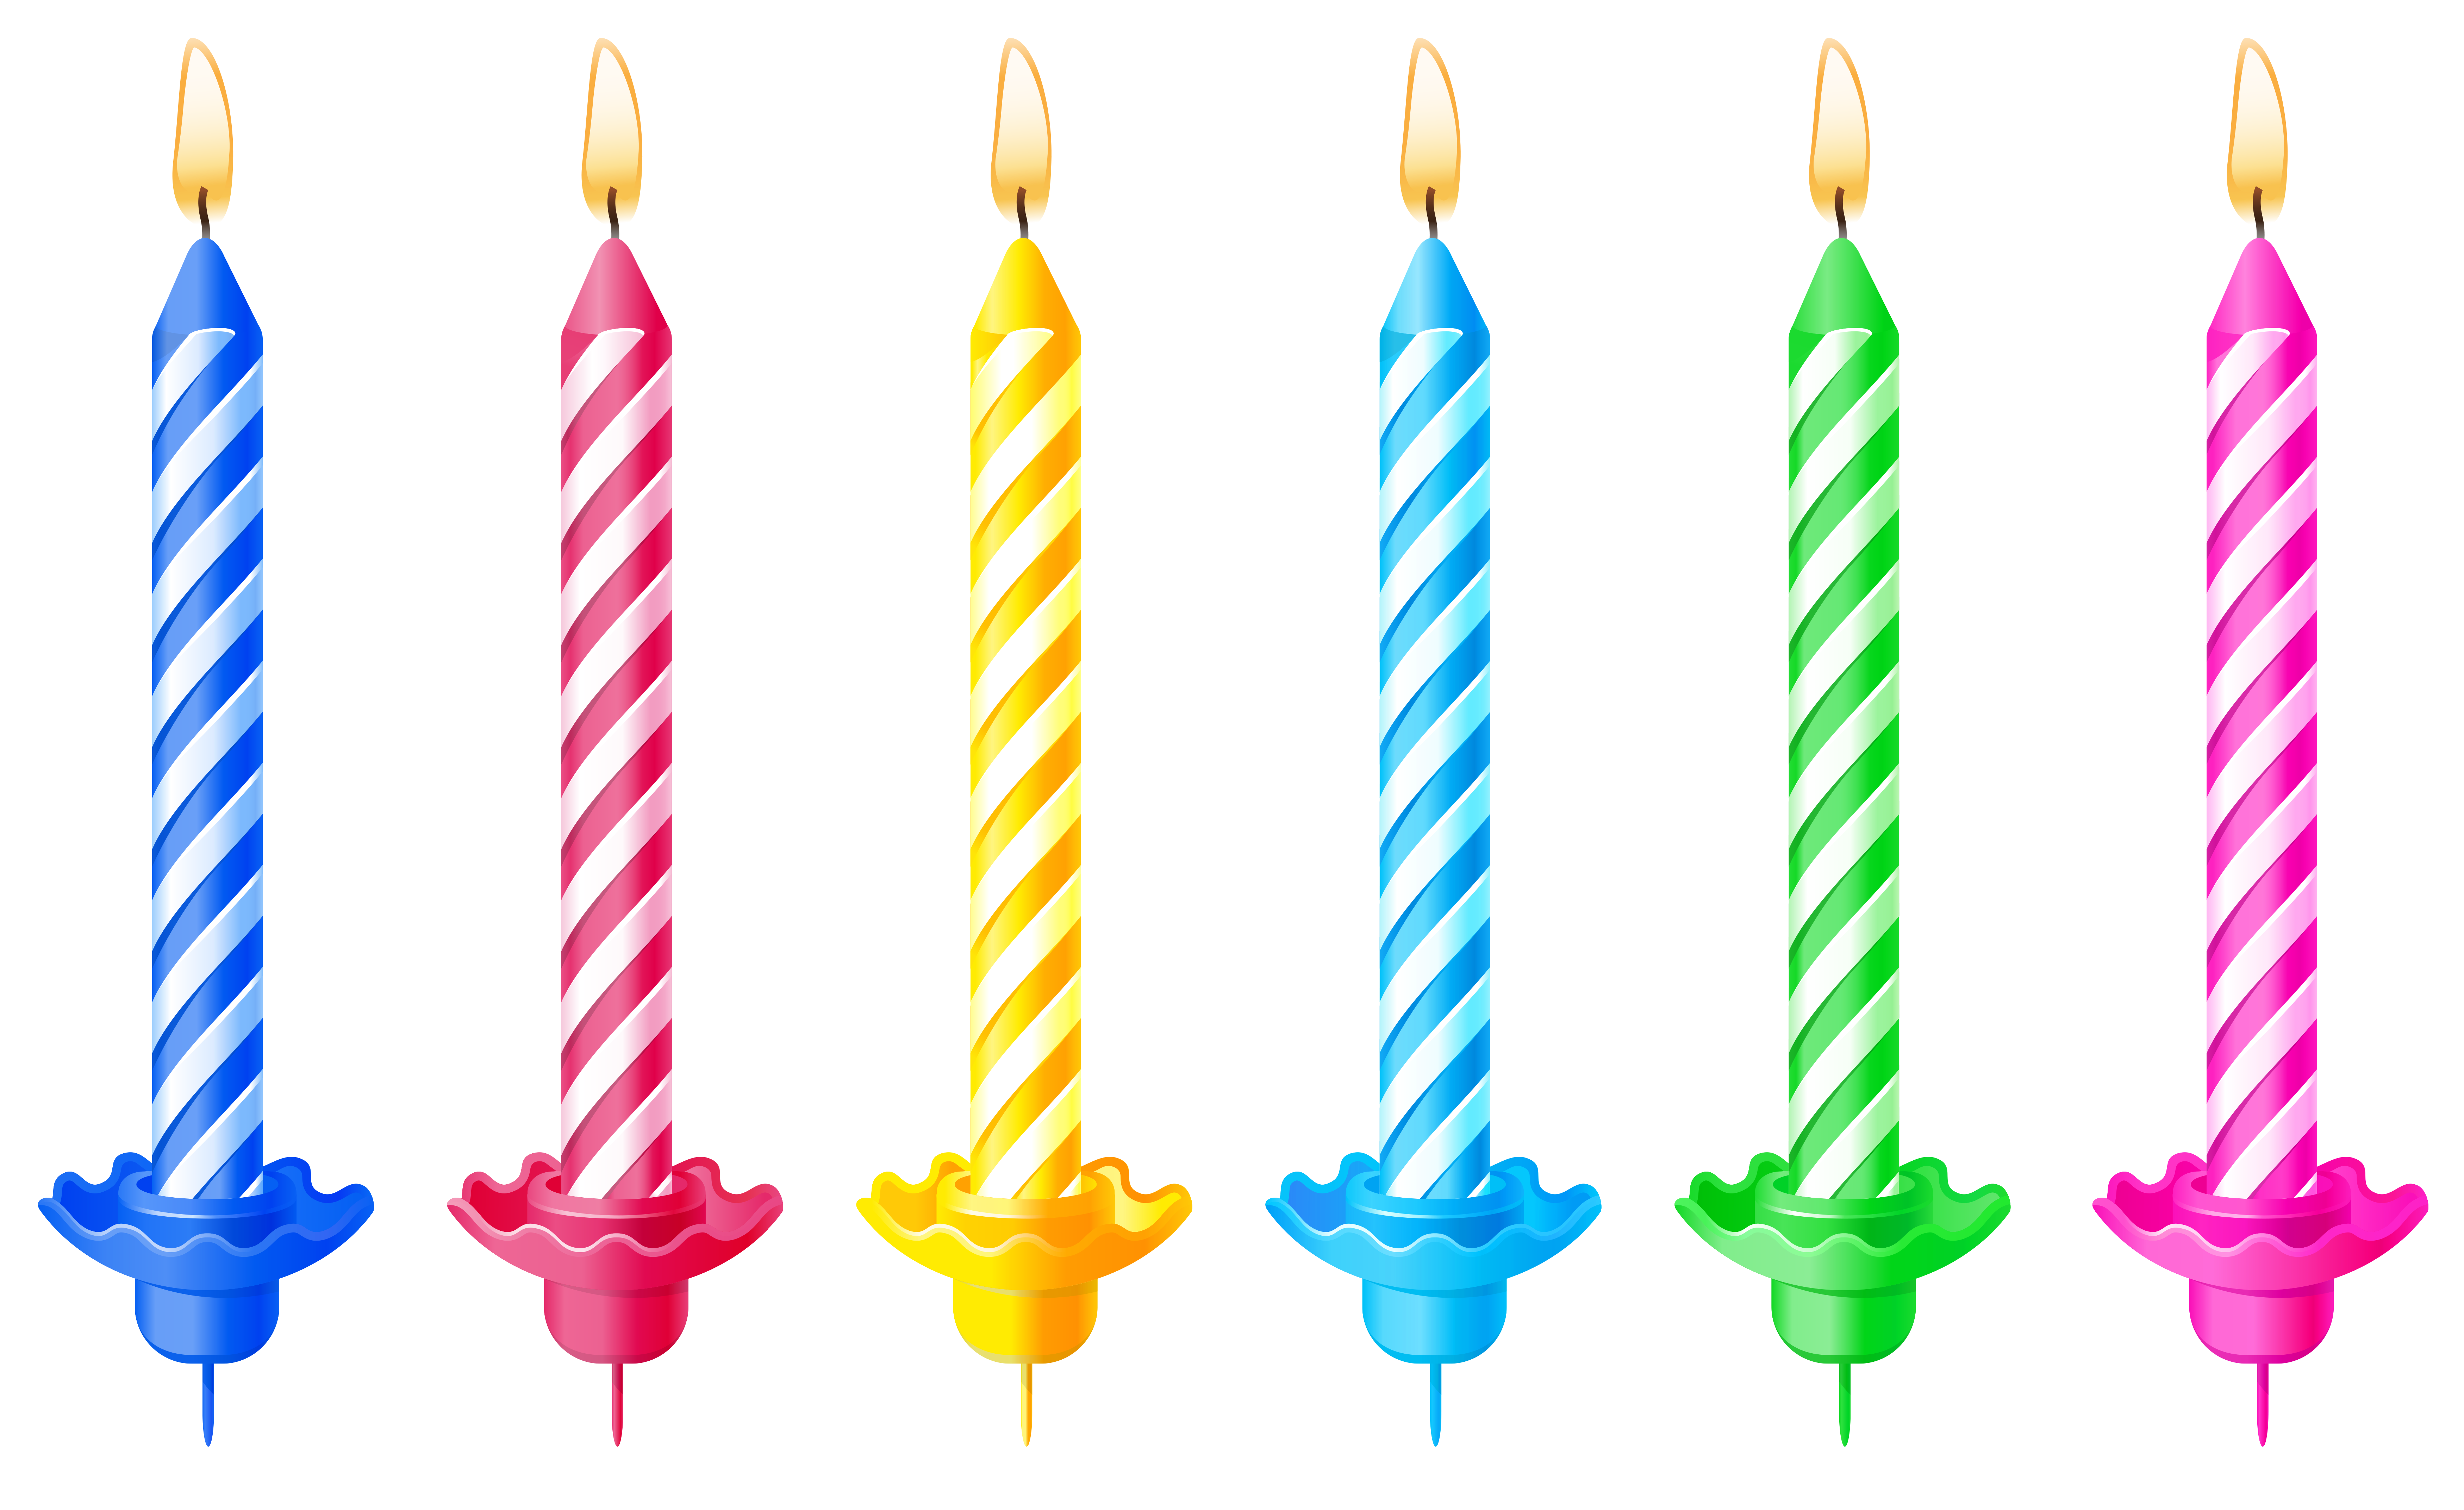 Free Candle Border Cliparts, Download Free Clip Art, Free.